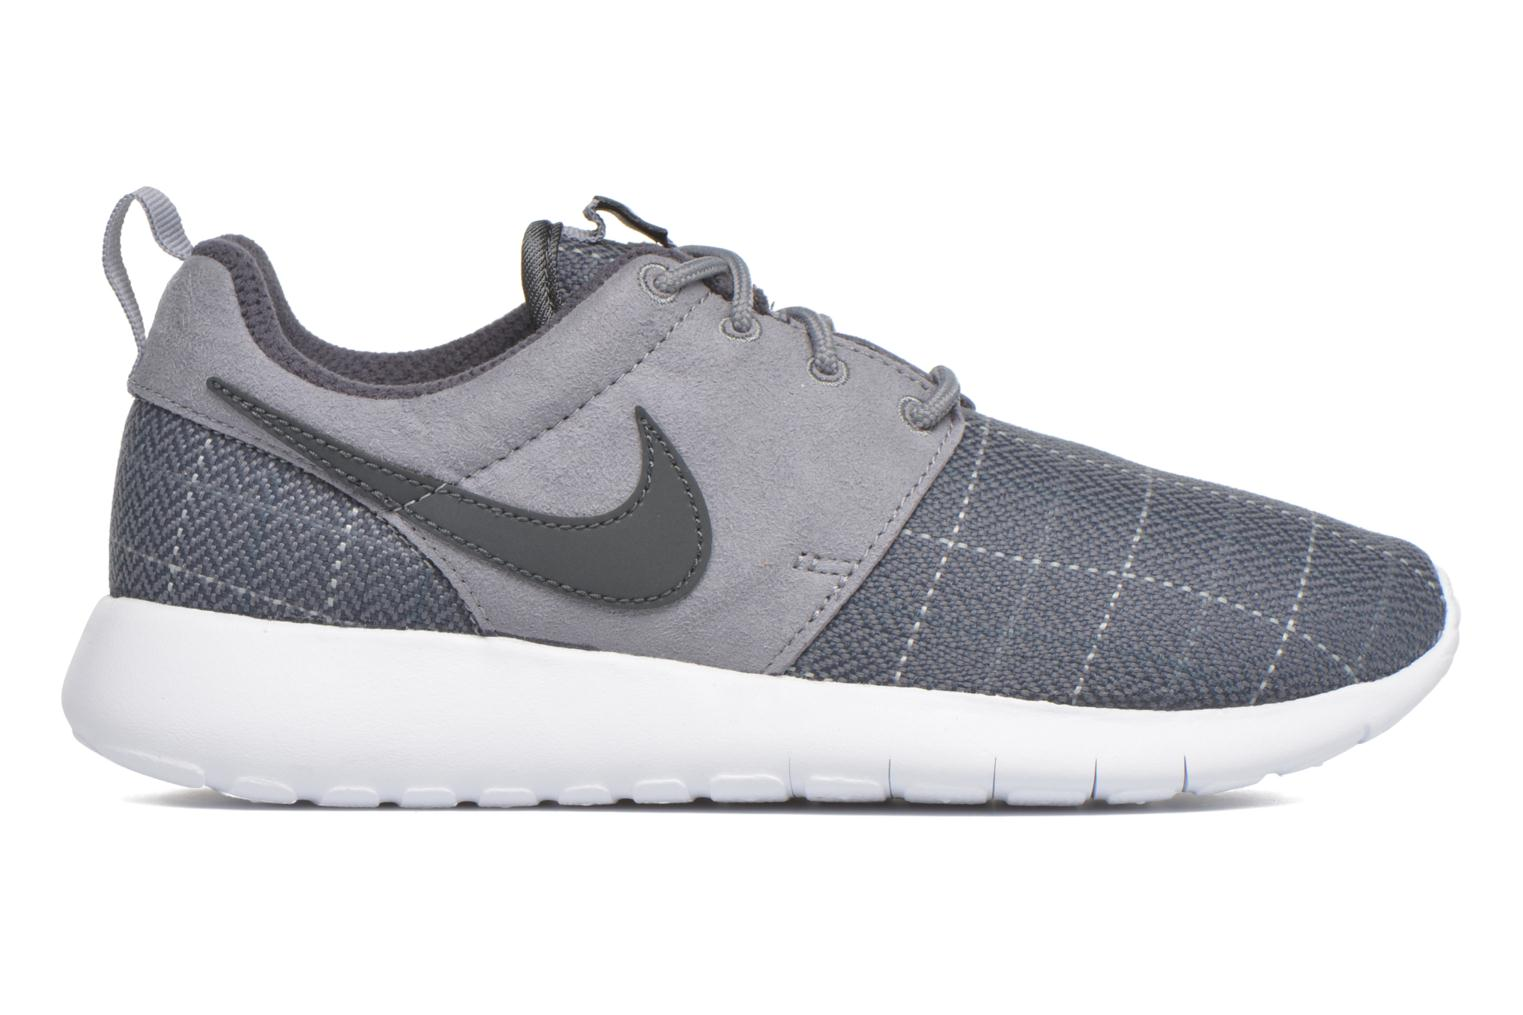 Cool Grey/Anthracite-Wolf Grey Nike Nike Roshe One Se (Gs) (Gris)